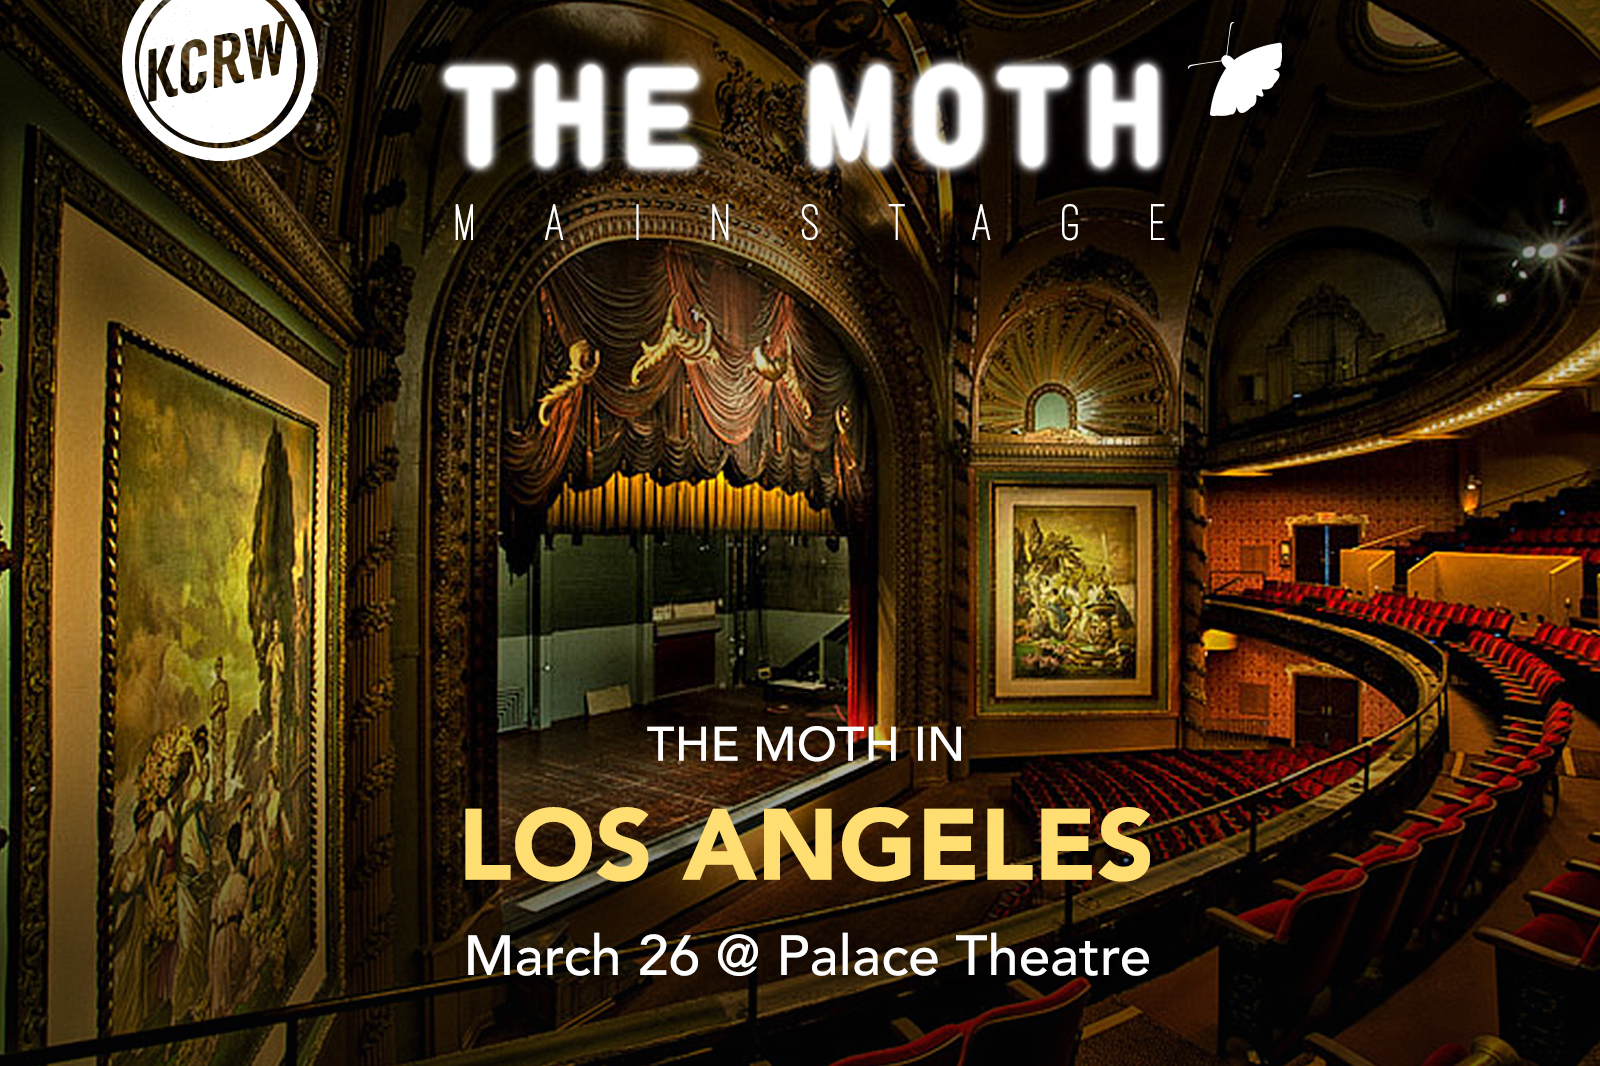 The MOTH in Los Angeles